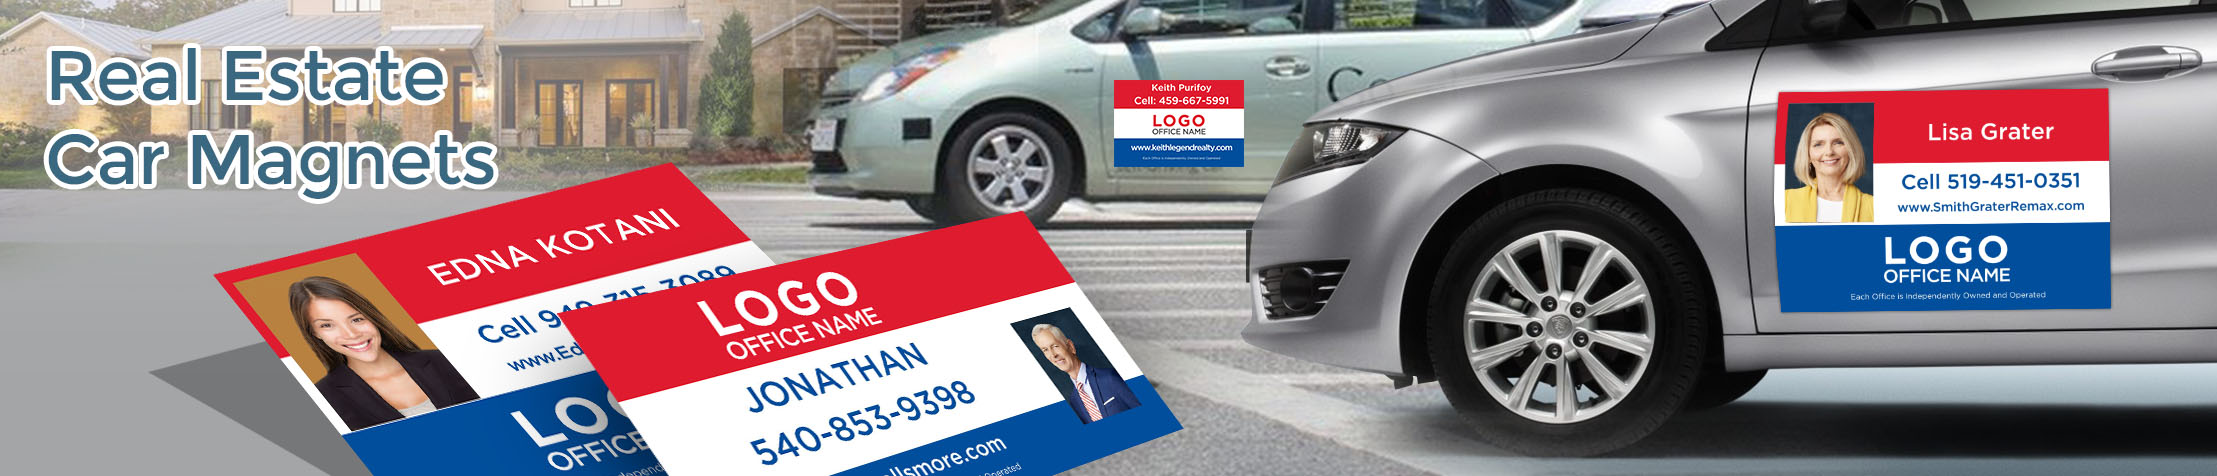 RE/MAX Real Estate Car Magnets - RE/MAX  custom car magnets for realtors, with or without photo | BestPrintBuy.com